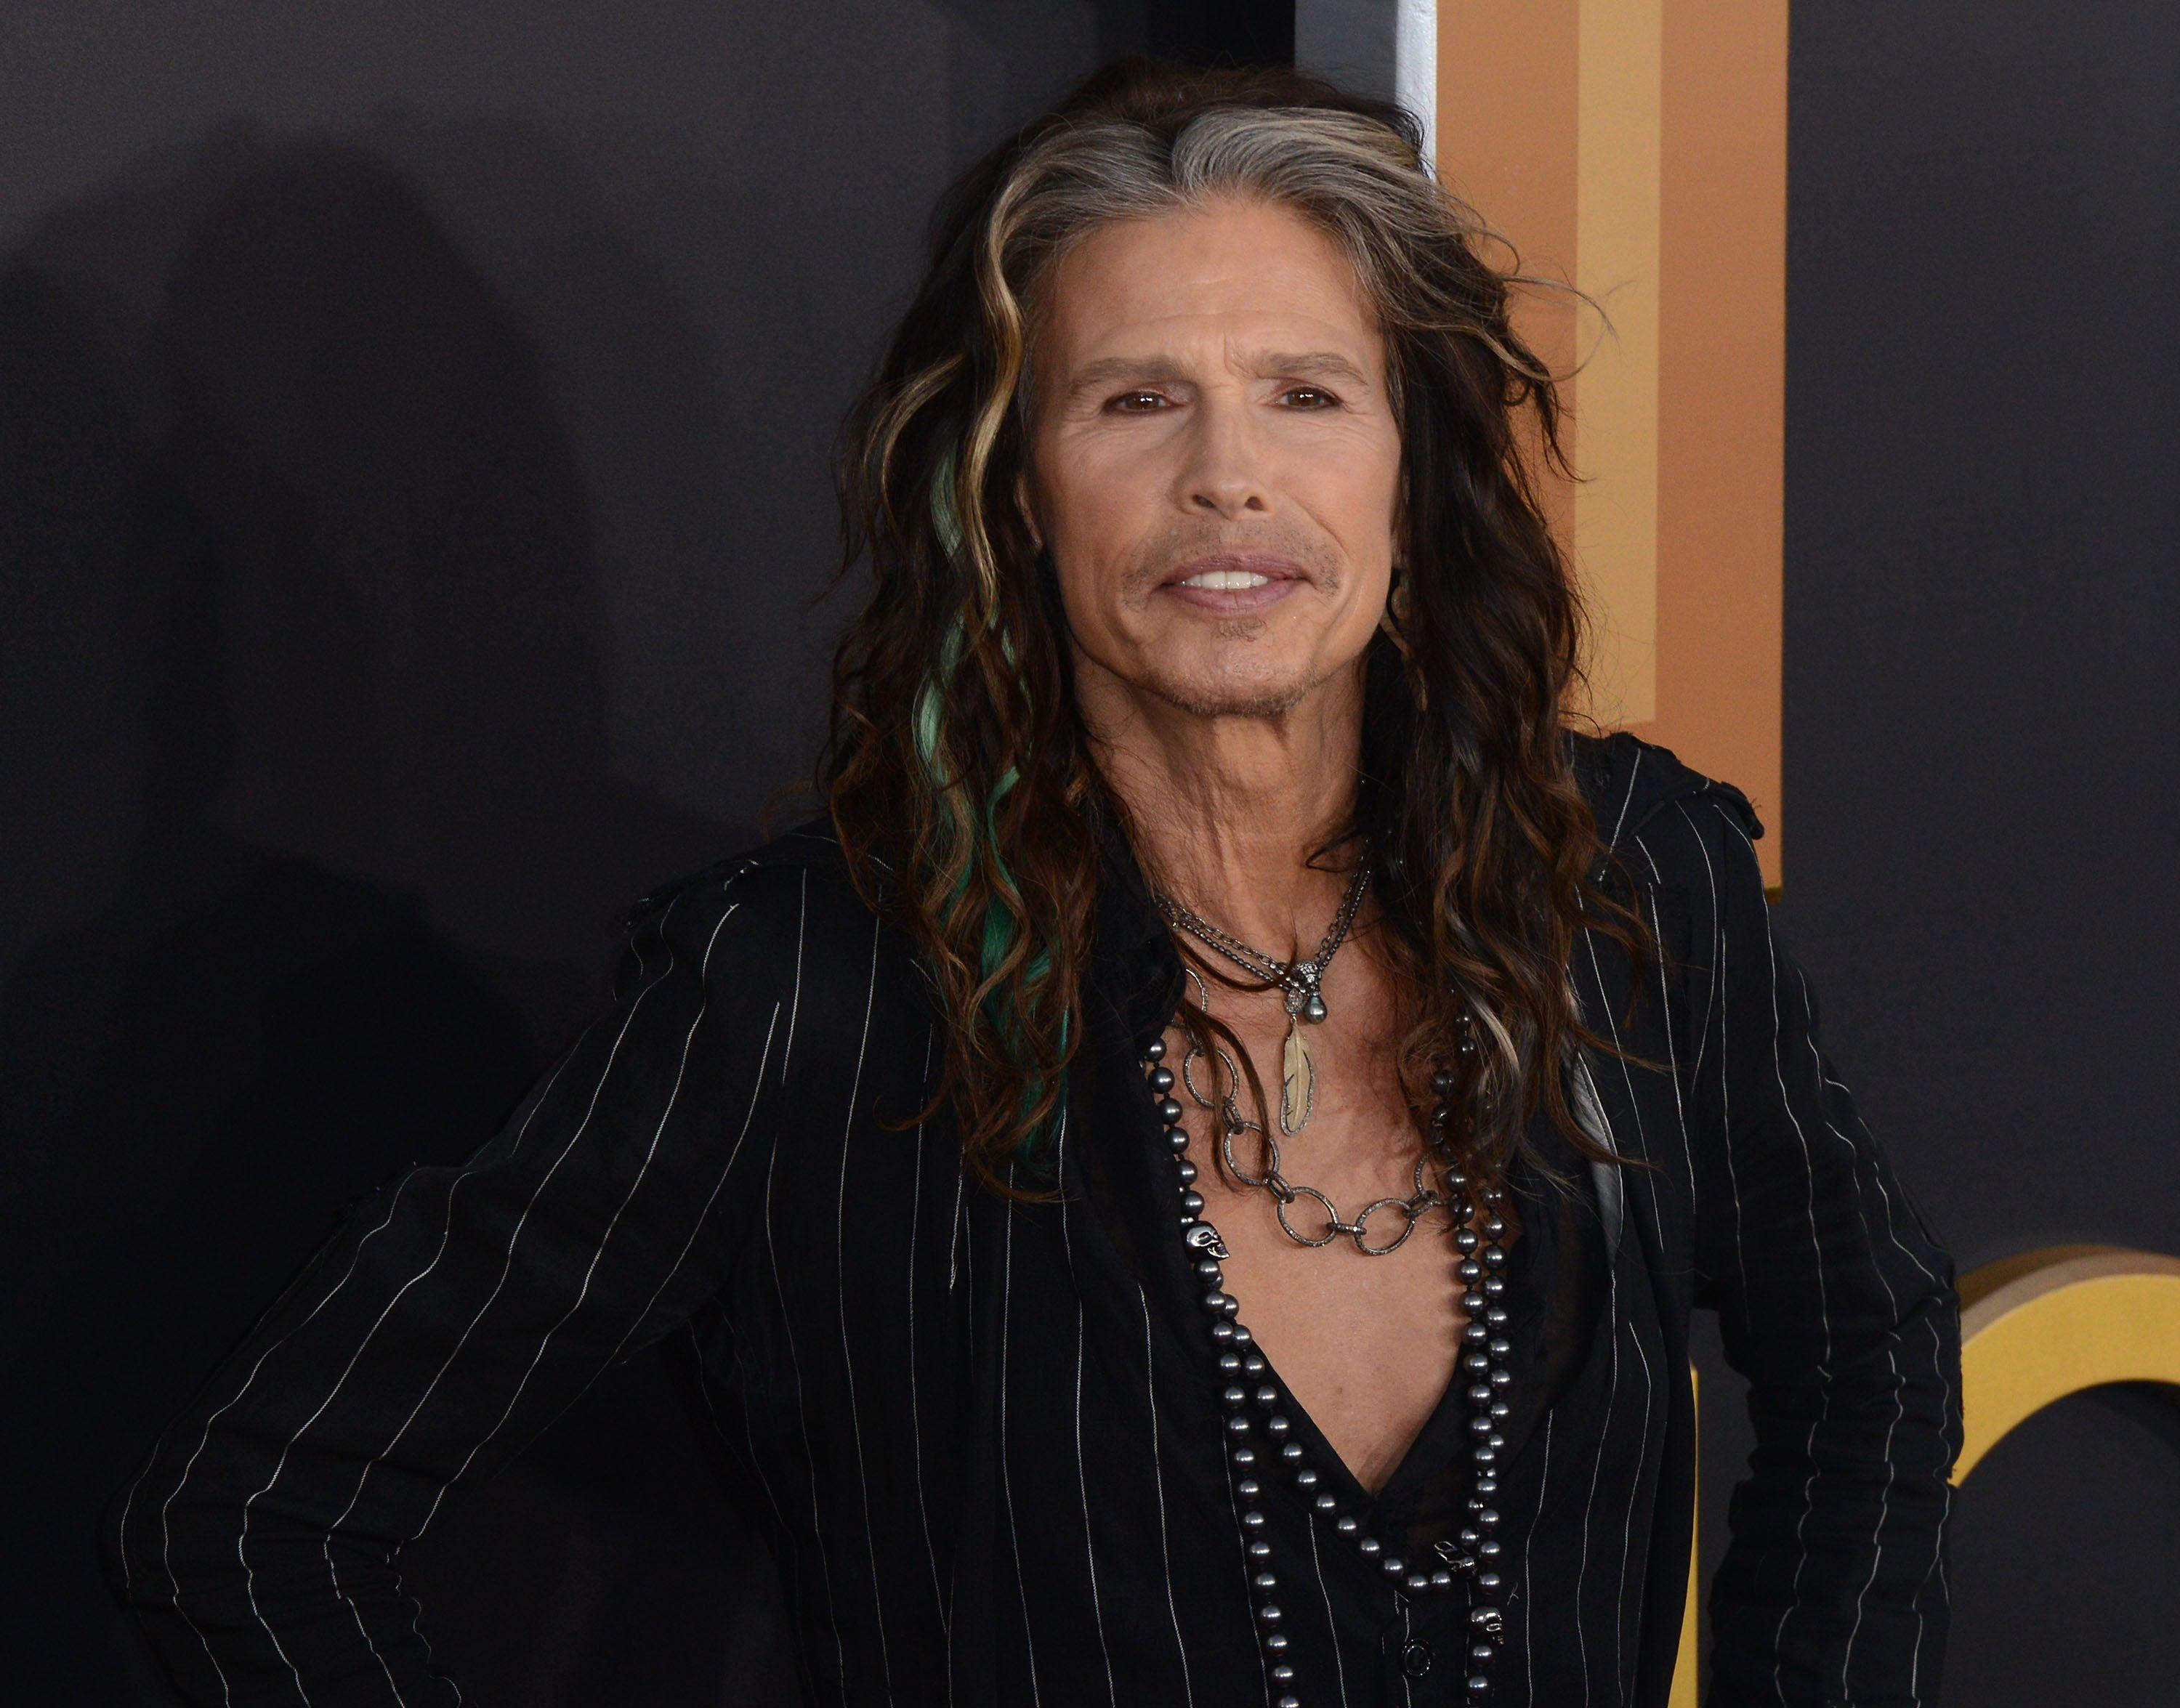 Steven Tyler Wallpapers High Quality